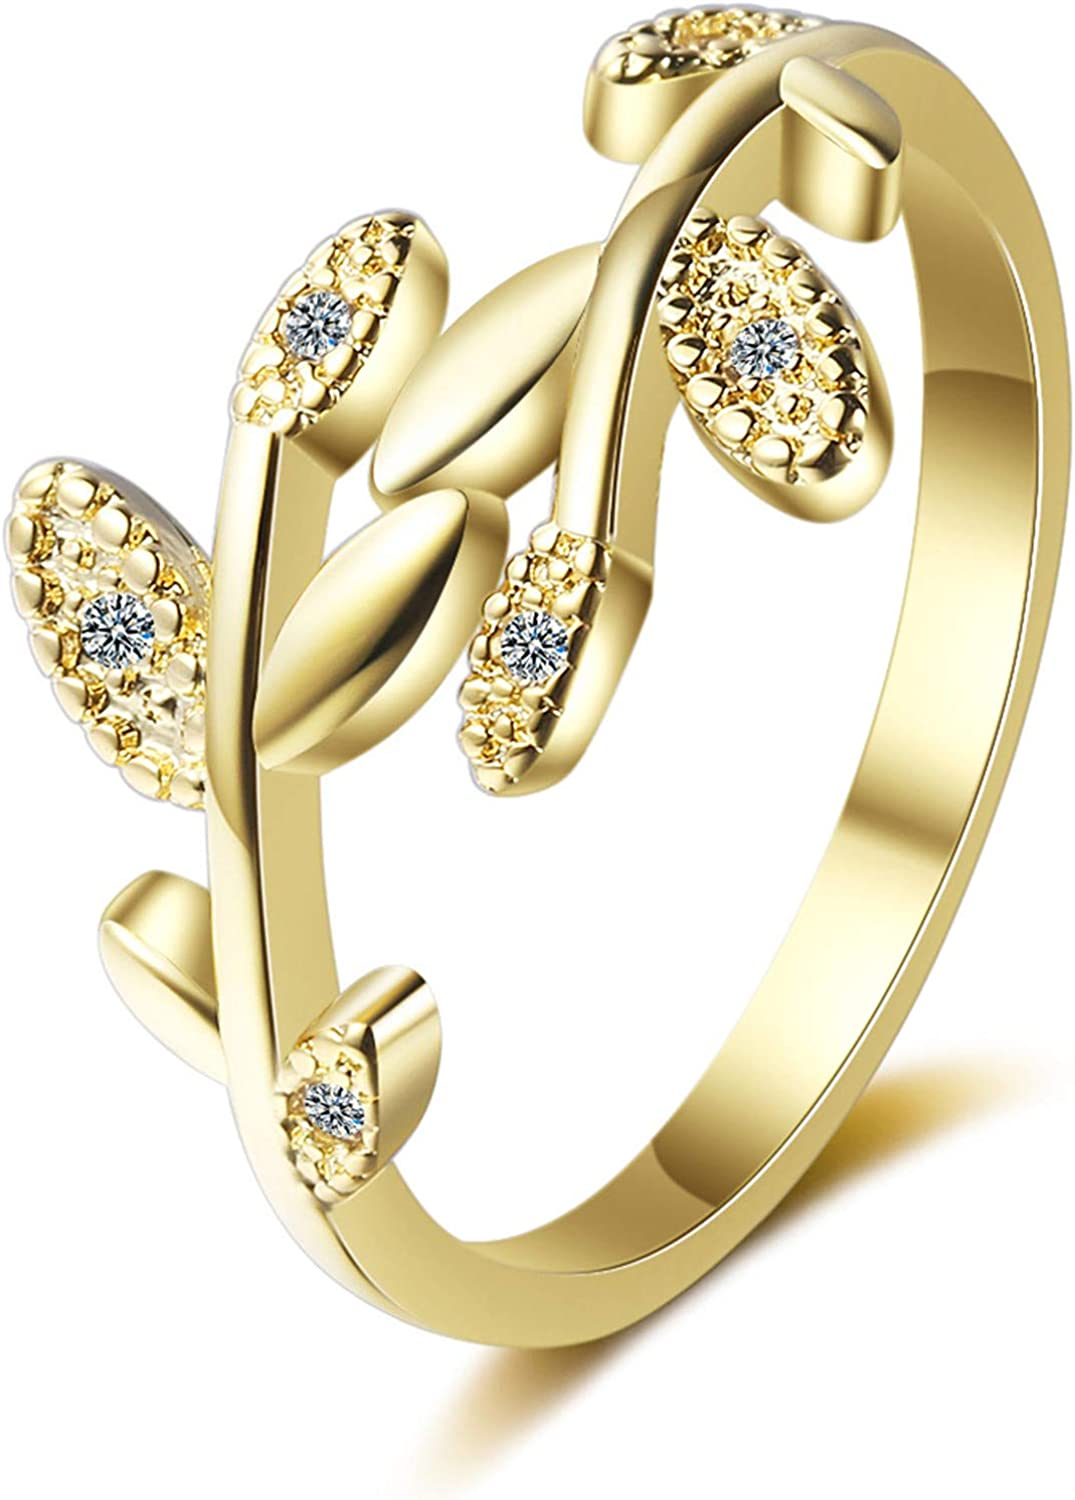 COLORFUL BLING Leaf Crystal Cubic Zirconia Open Finger Joint Stackable Adjustable Ring for Women Girl Jewelry Gifts Statement Dainty Simple Gold Wind Plants